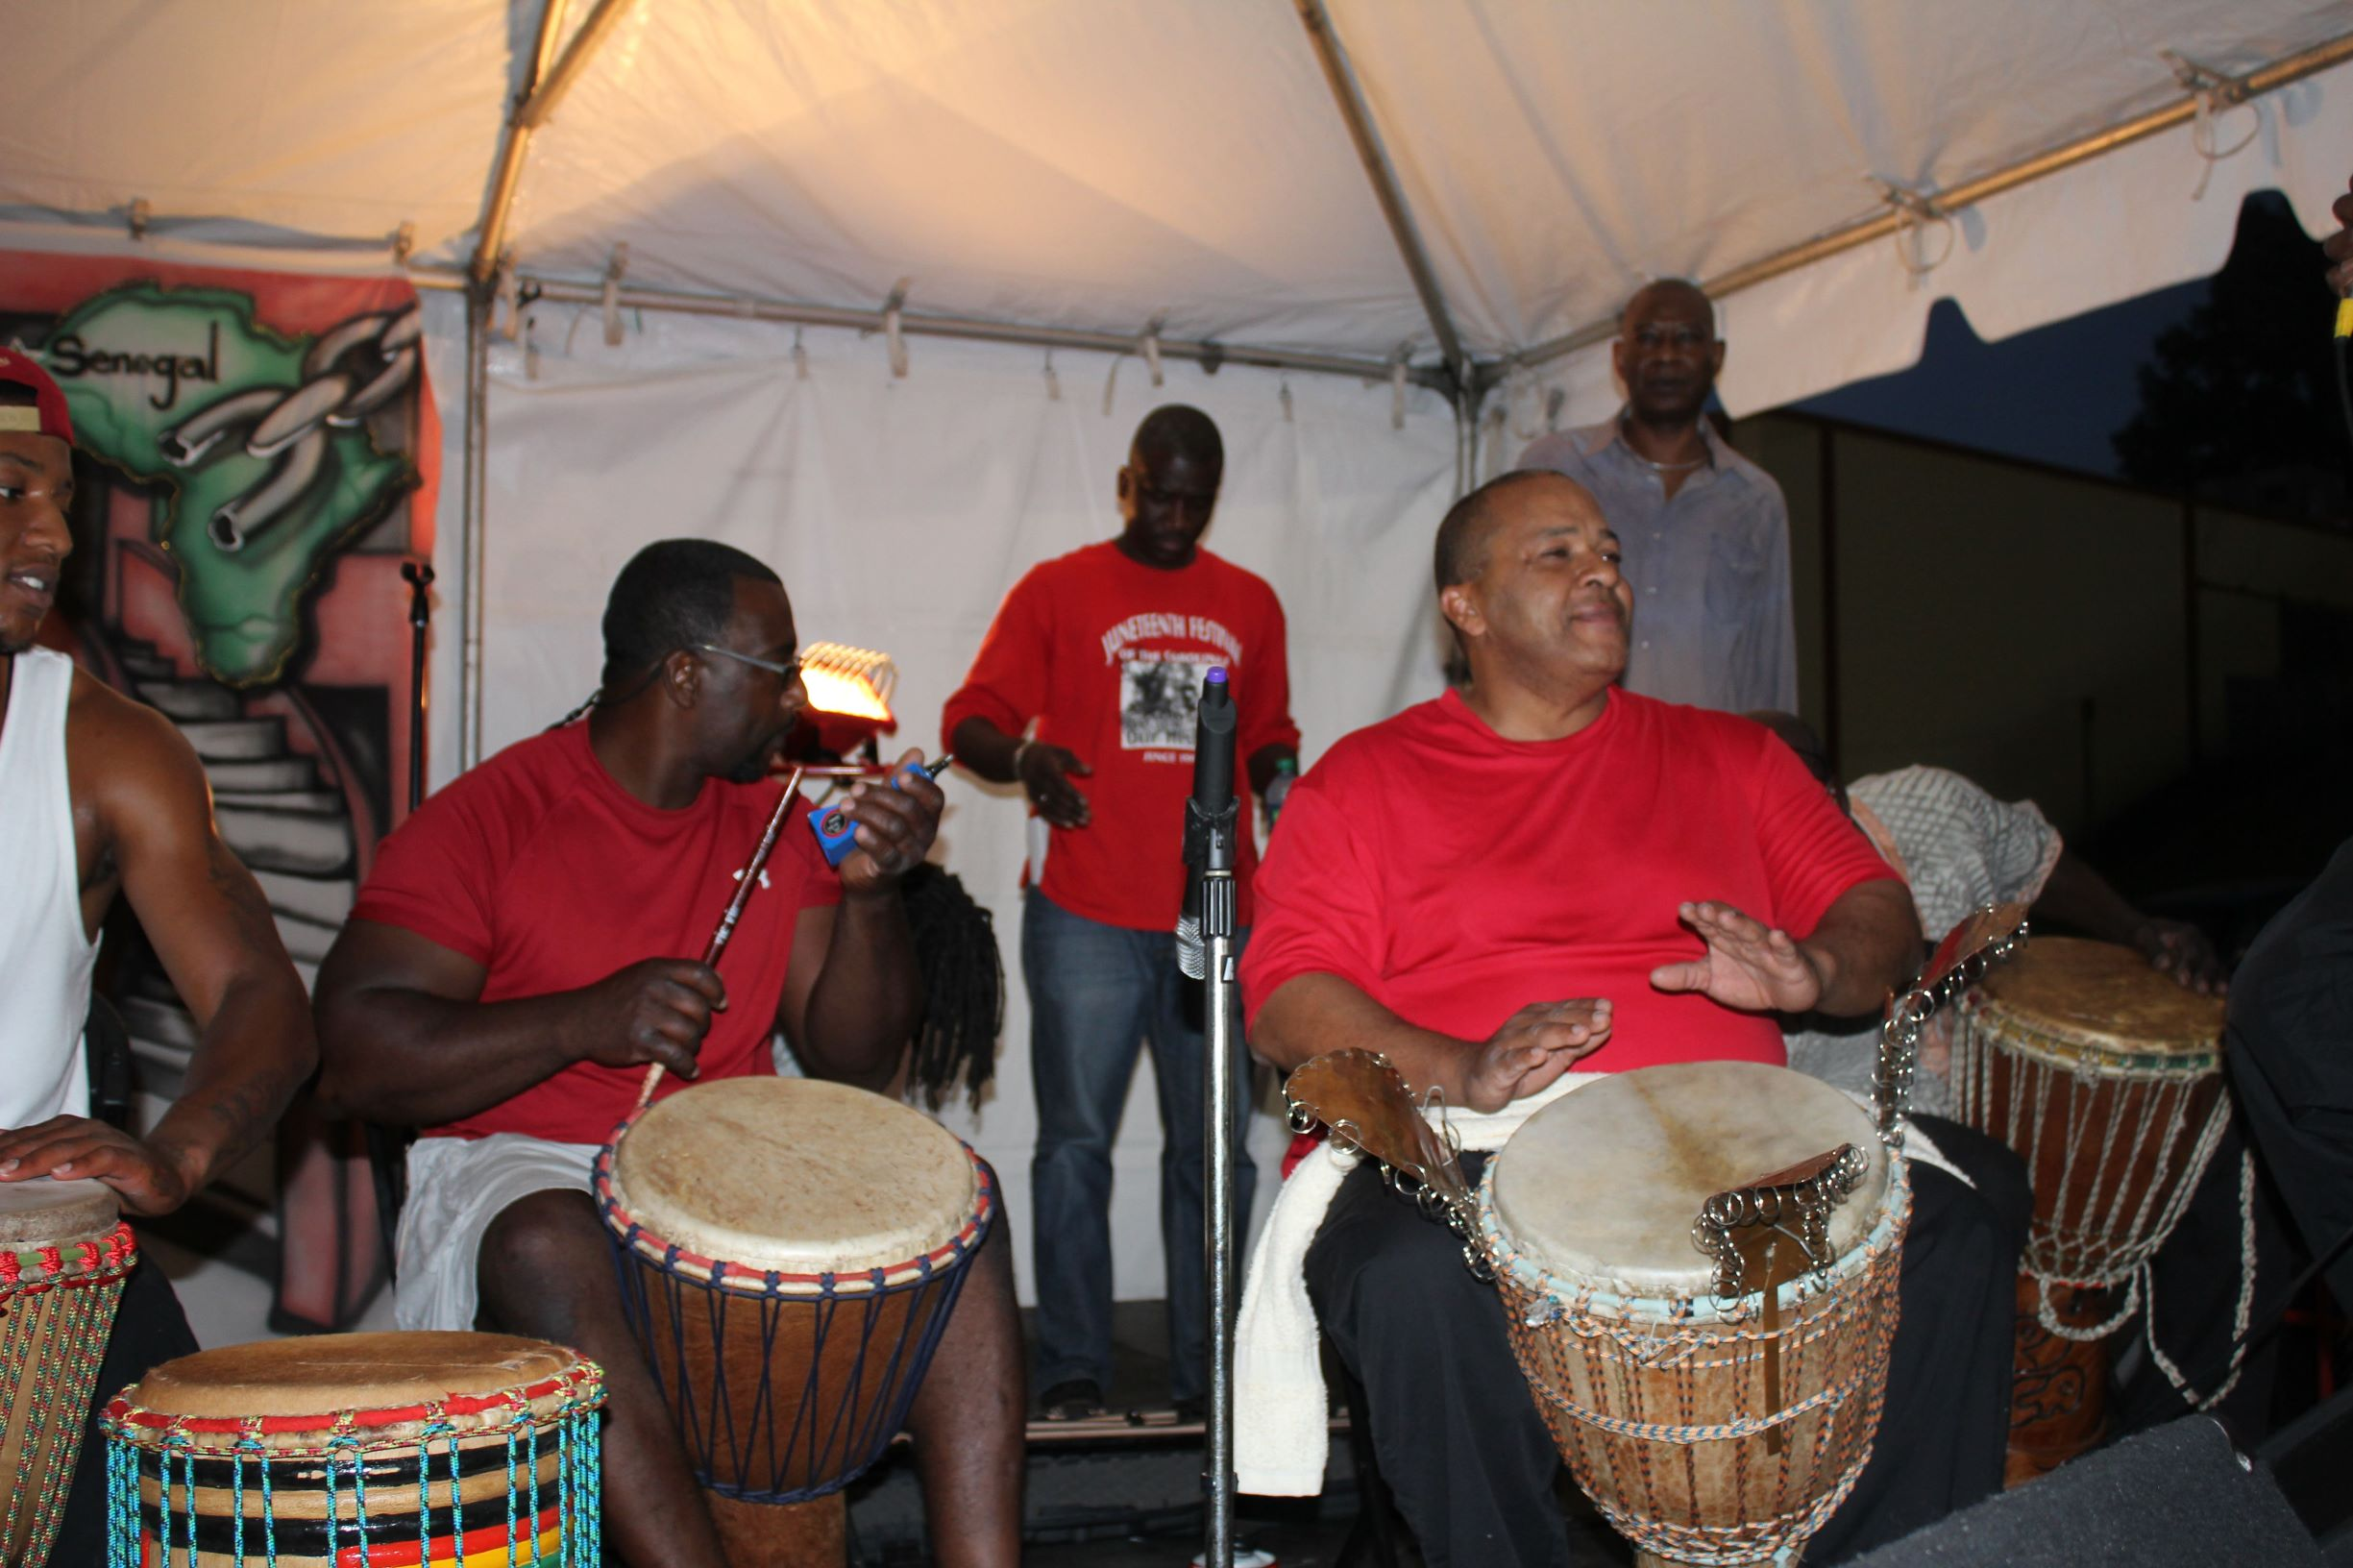 Juneteenth-of-the-Carolinas-drum-circle